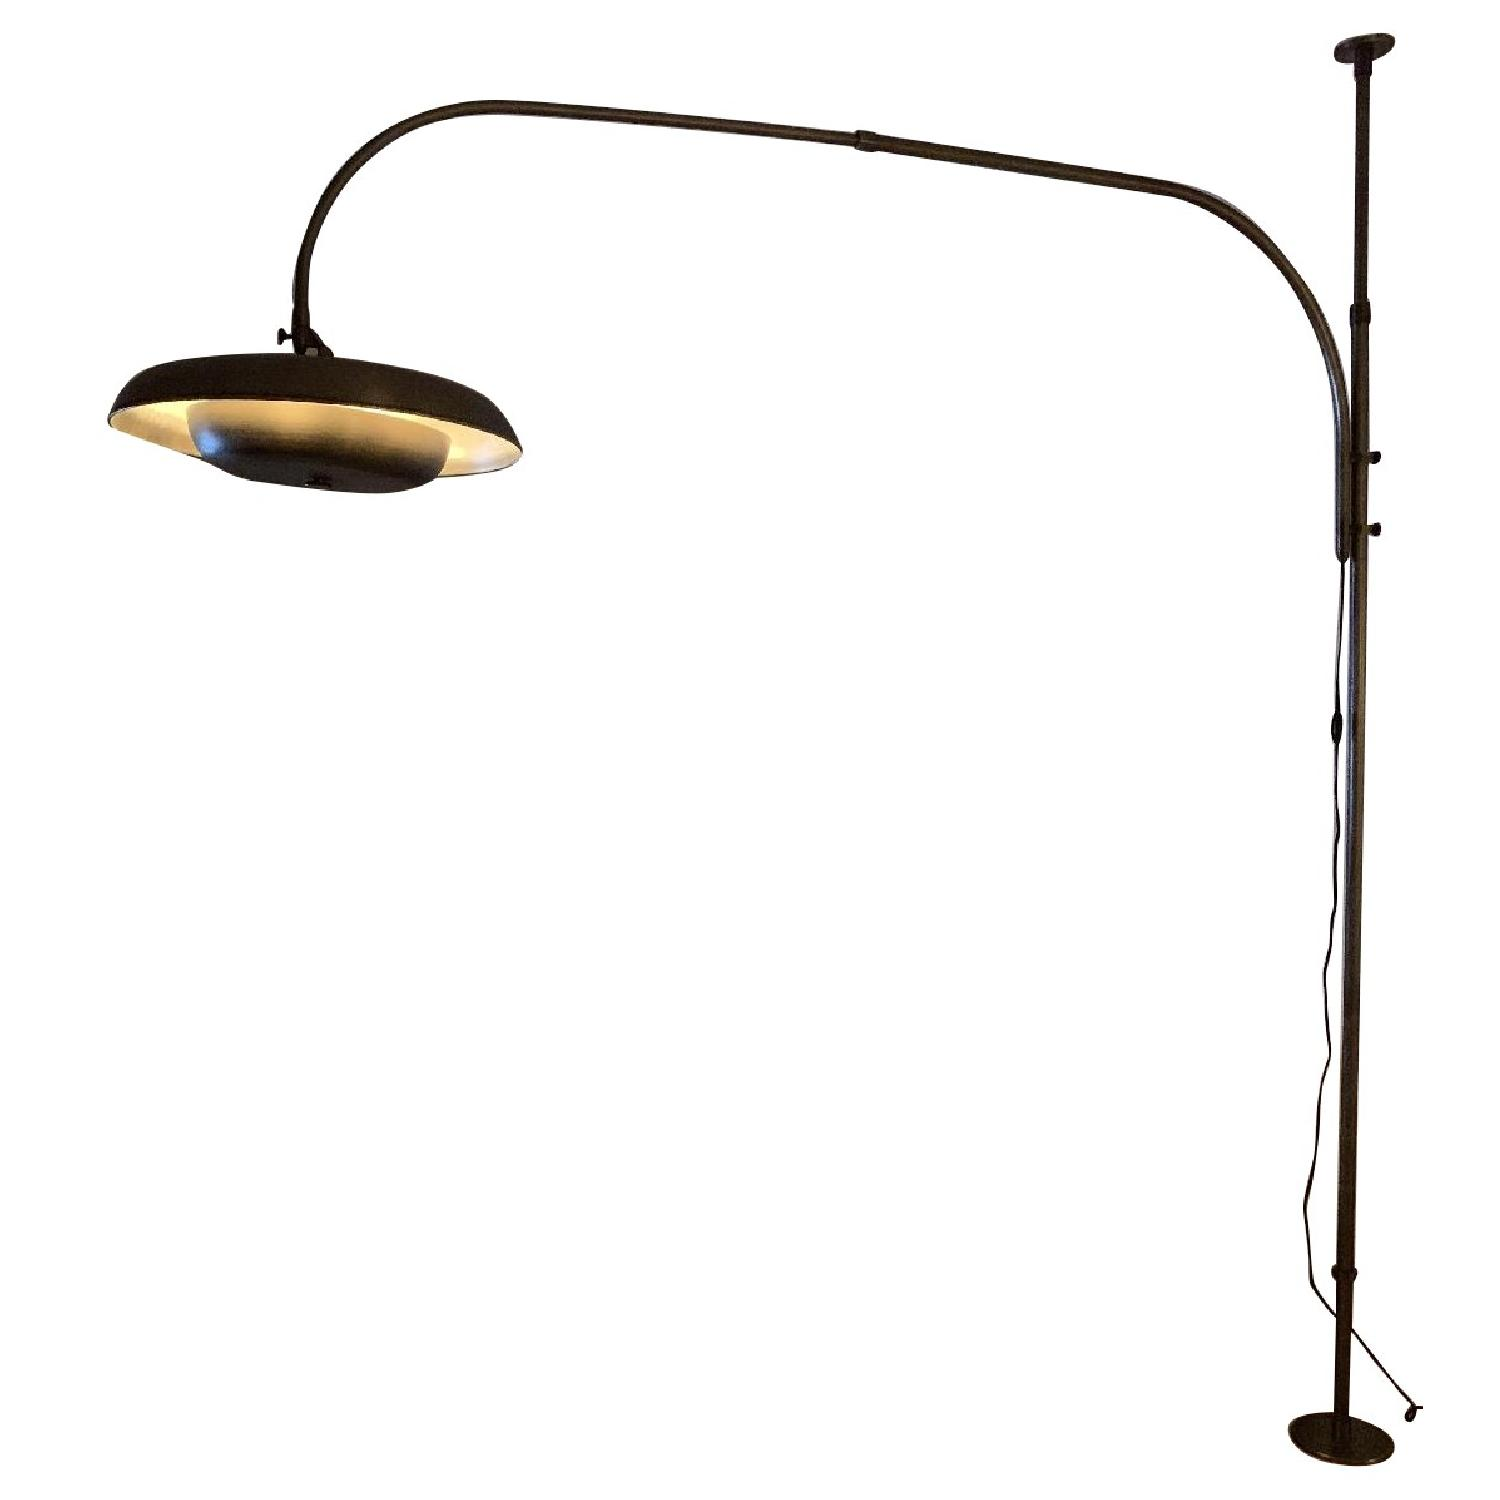 Restoration Hardware 1970s Italian Tension Pole Lamp